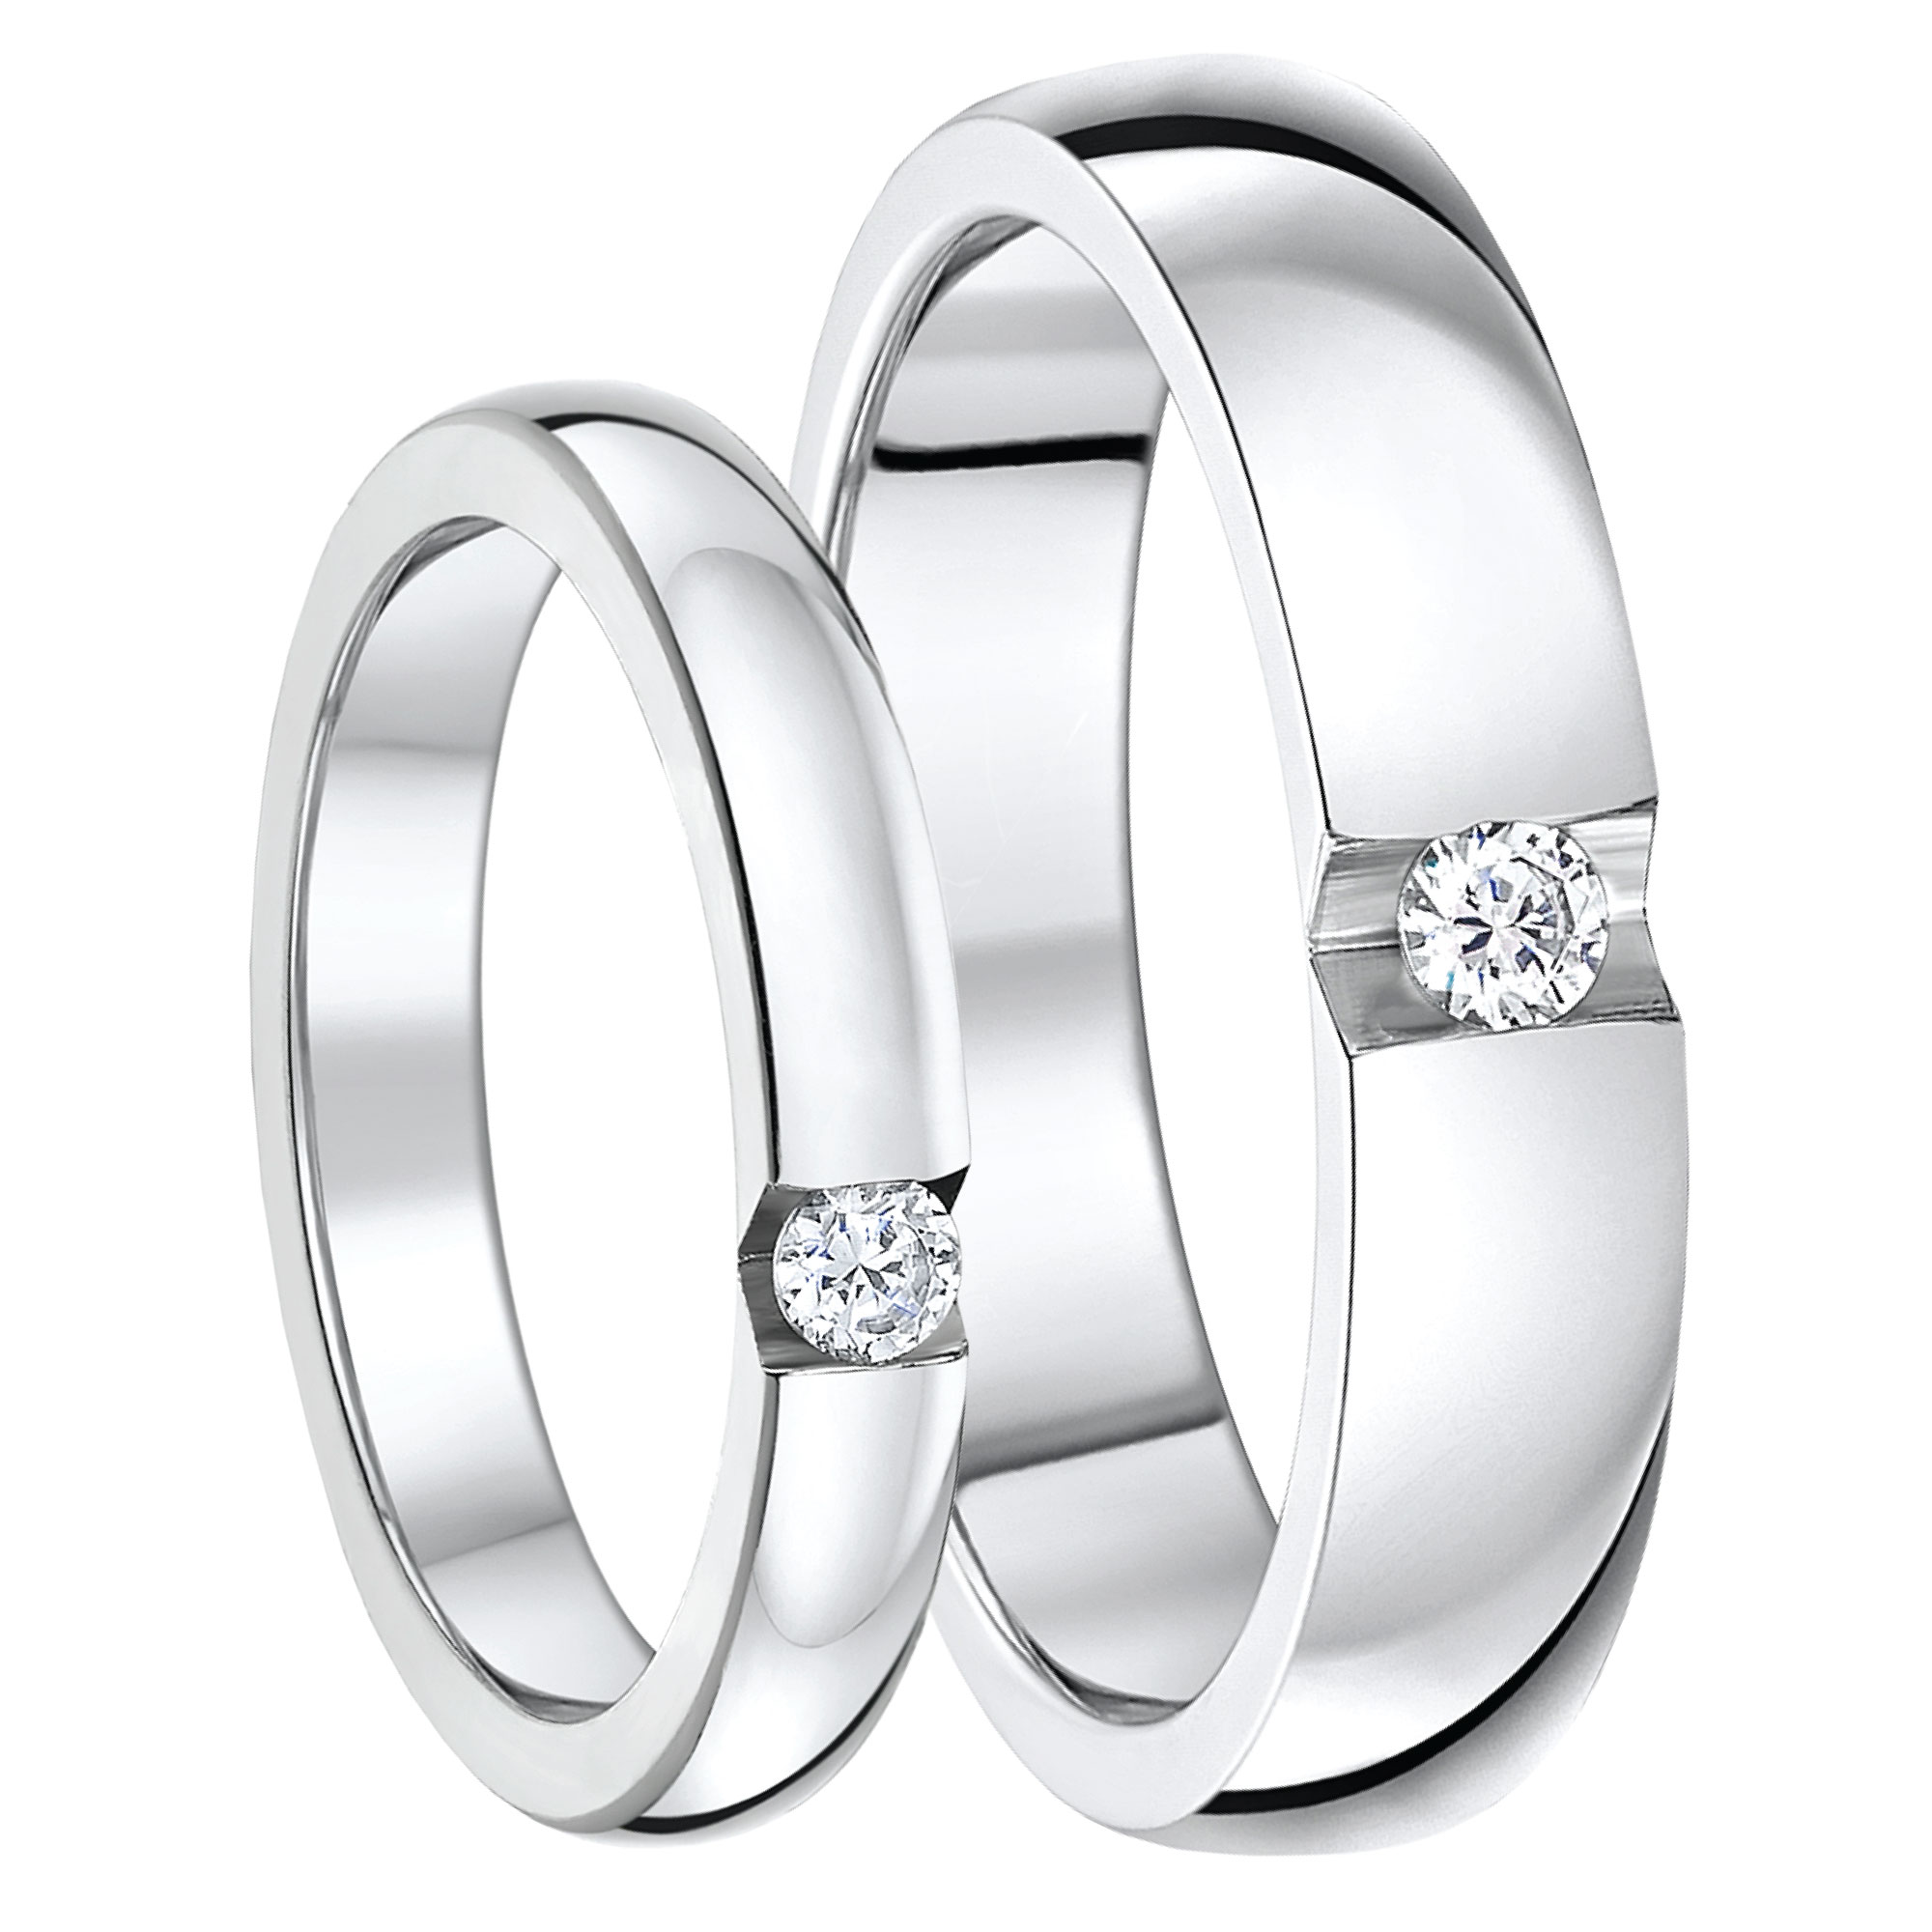 platinum bands img closed pics sets ring stone band show of please your set wedding me and topic e